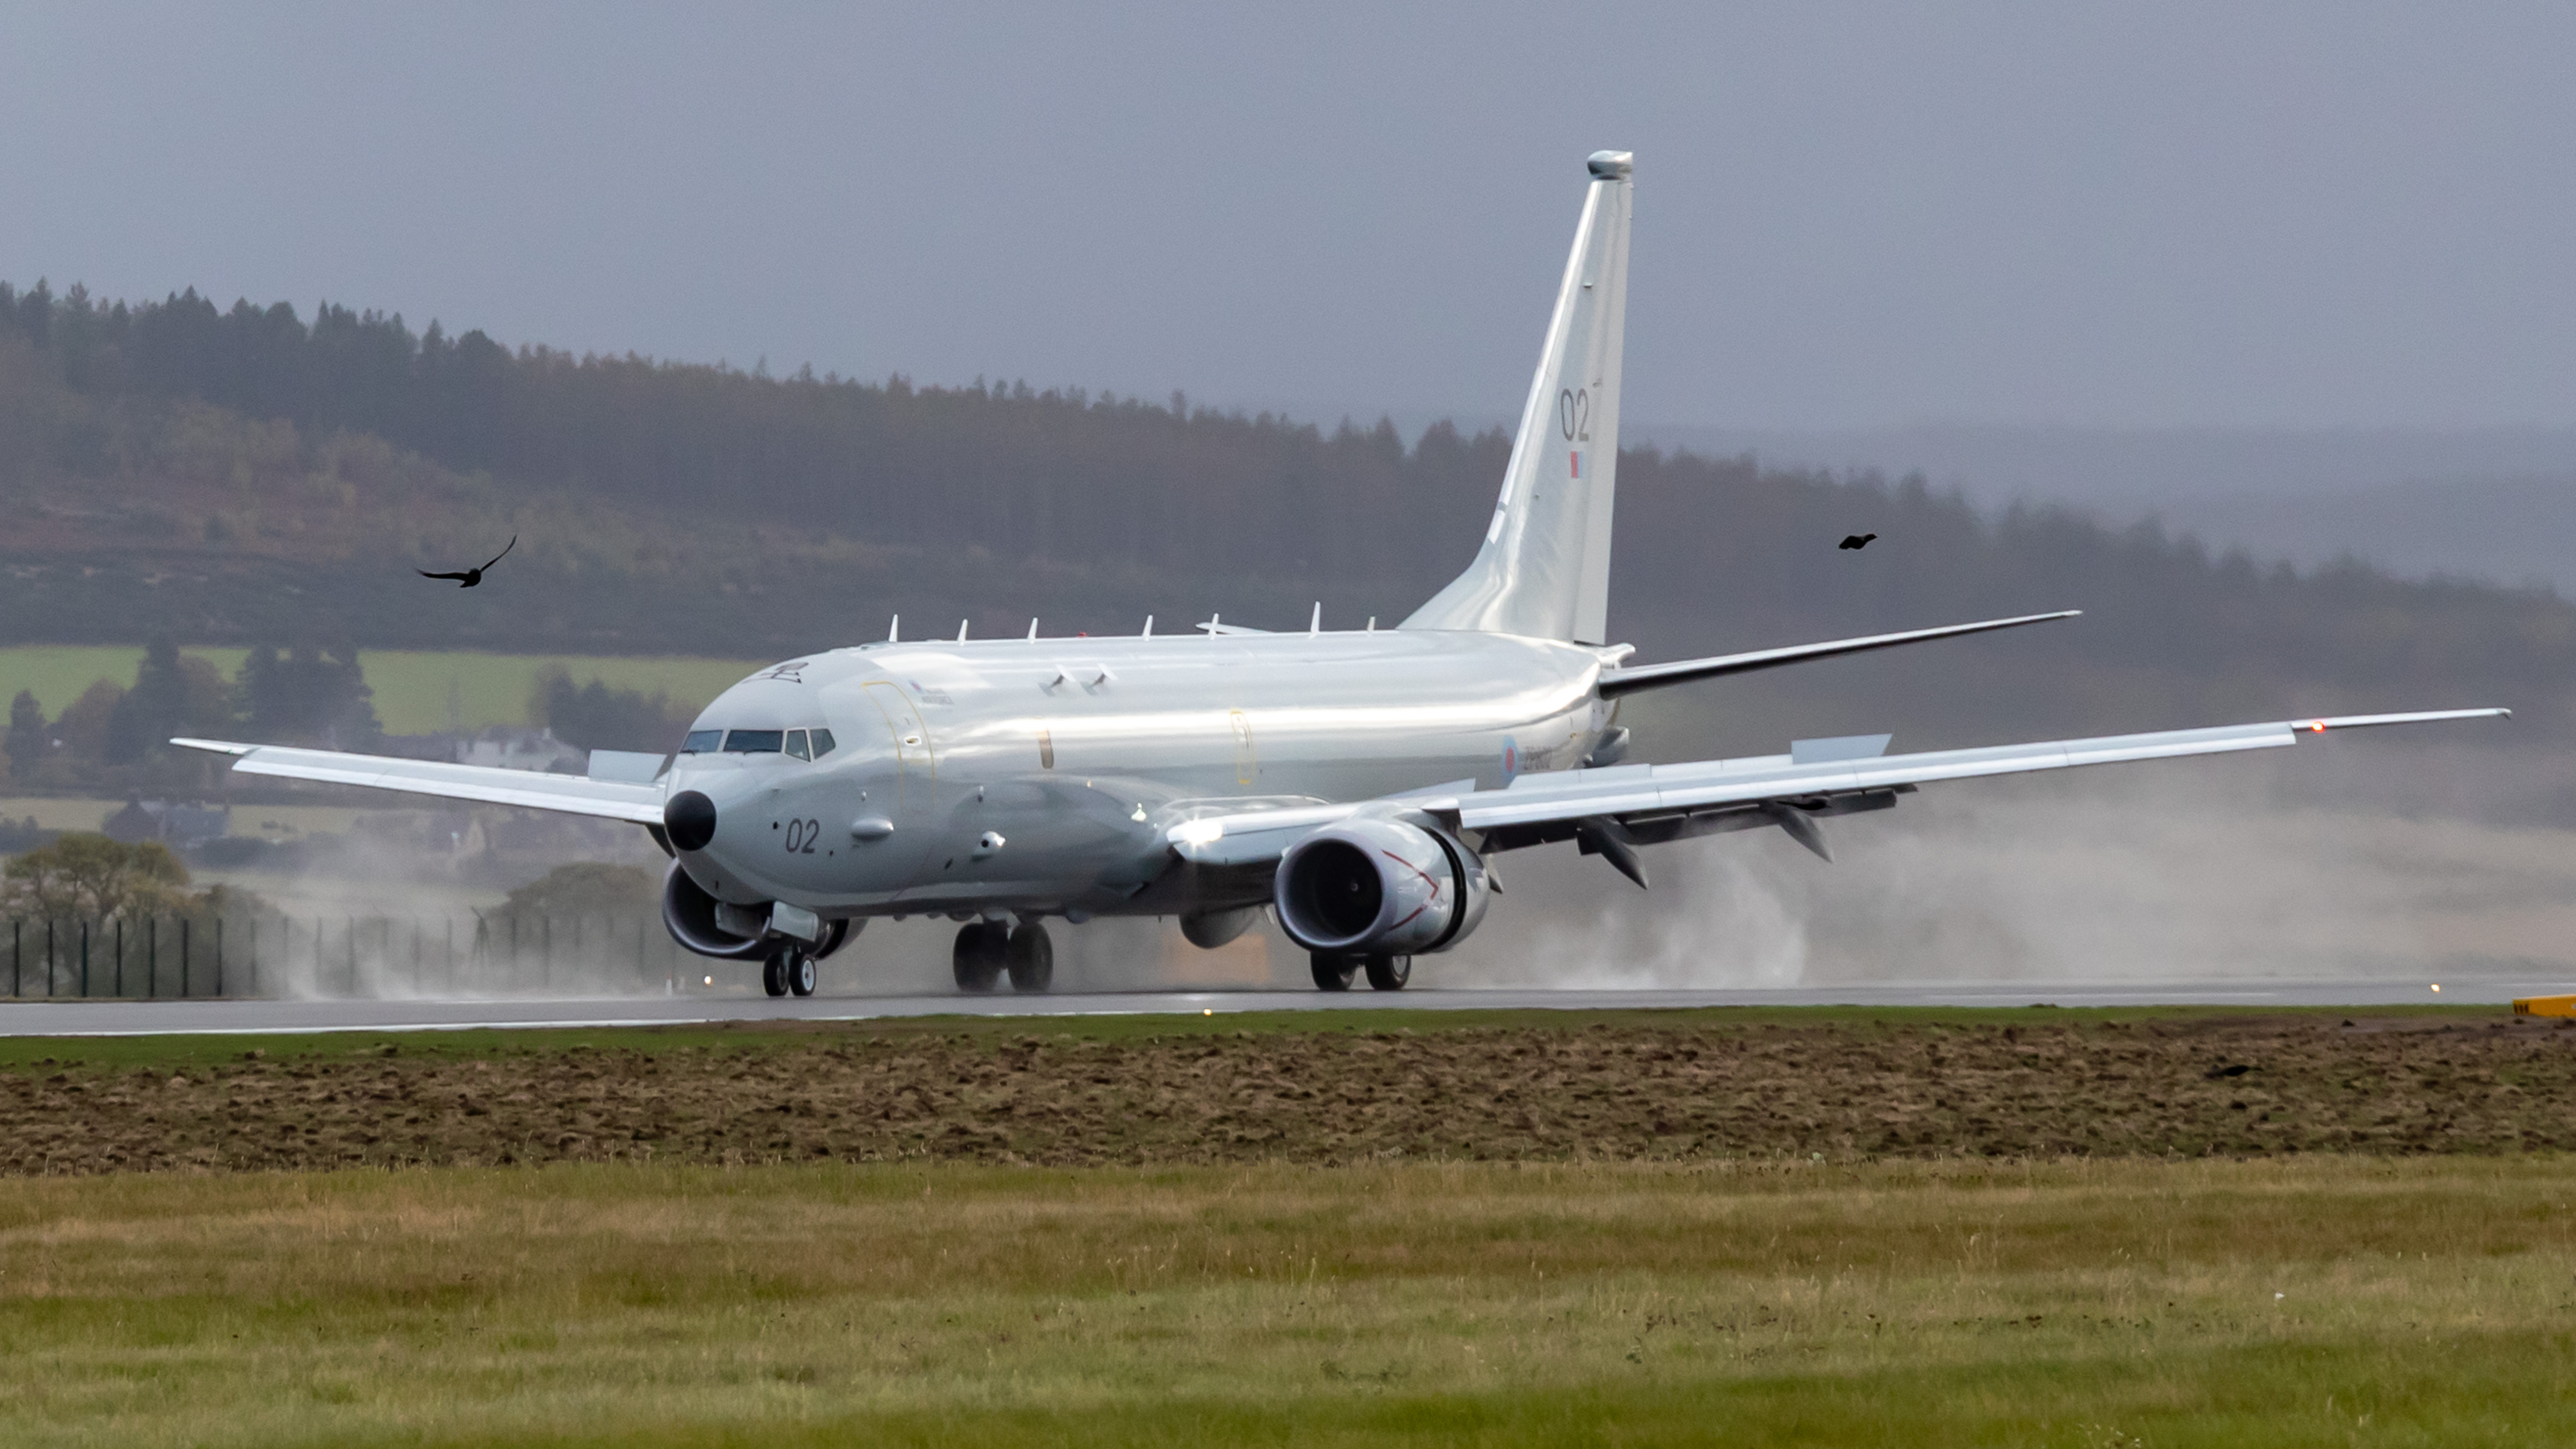 ZP802, the City of Elgin, touches down at RAF Lossiemouth for the first time